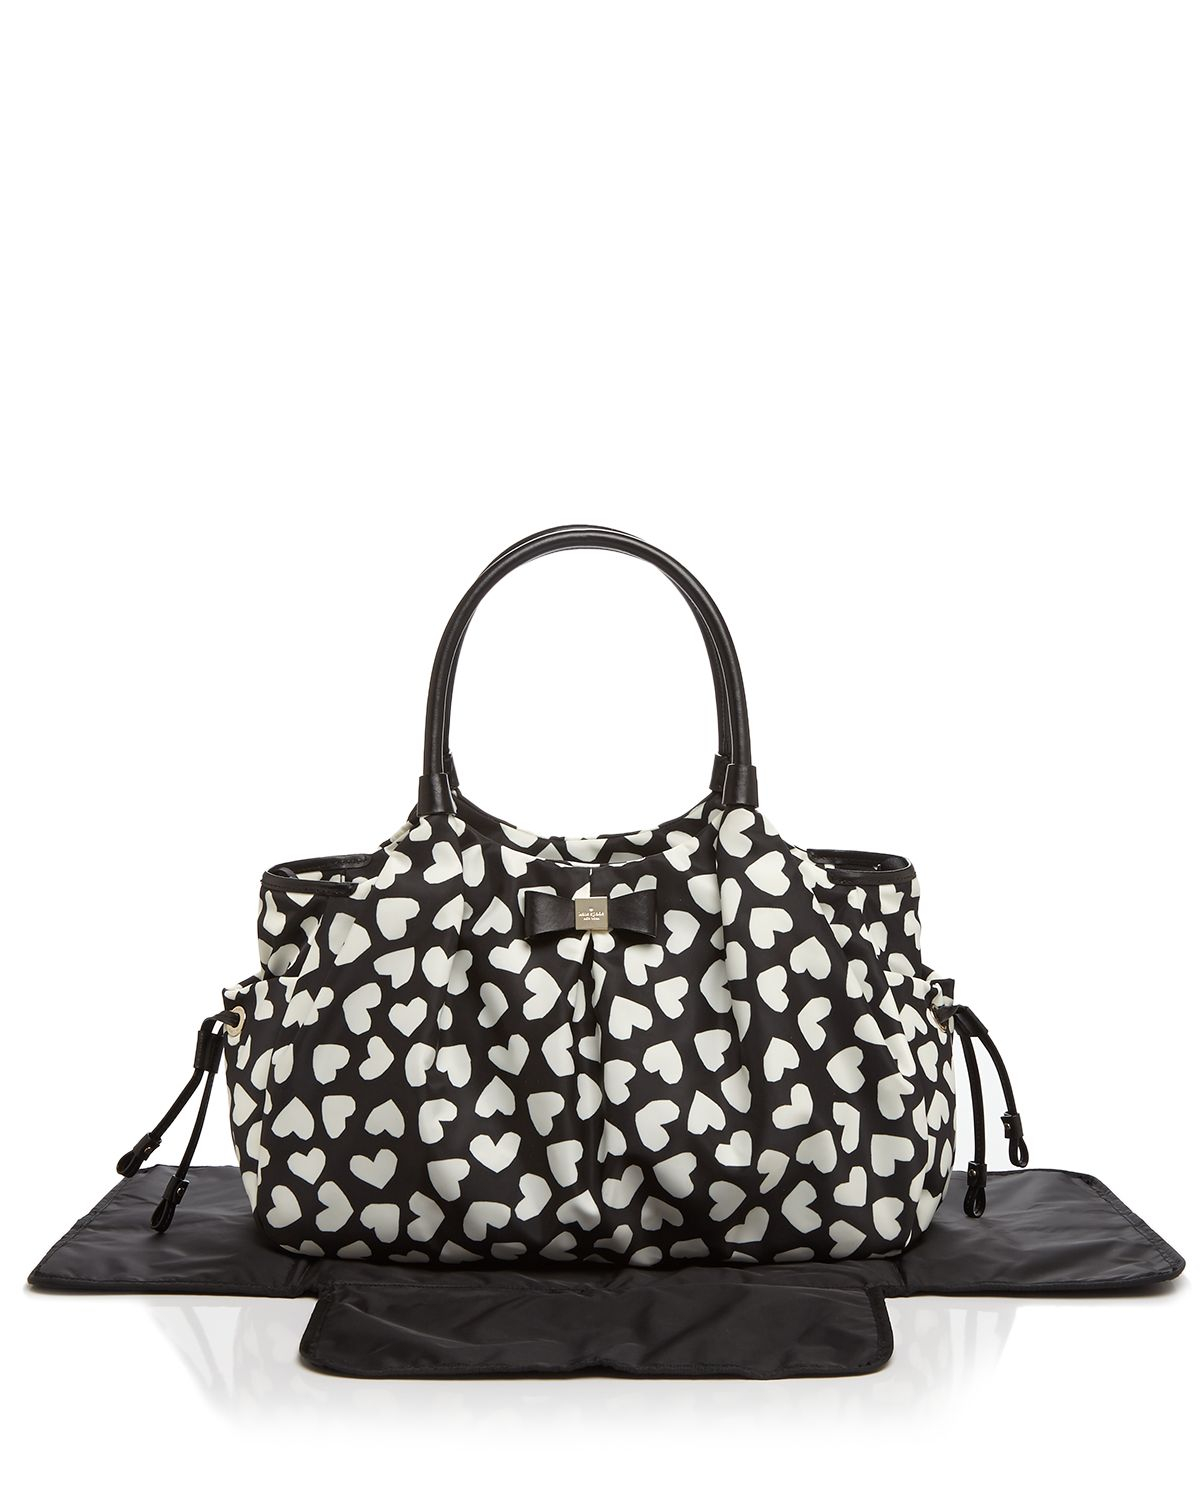 kate spade new york diaper bag renny drive nylon stevie in black lyst. Black Bedroom Furniture Sets. Home Design Ideas